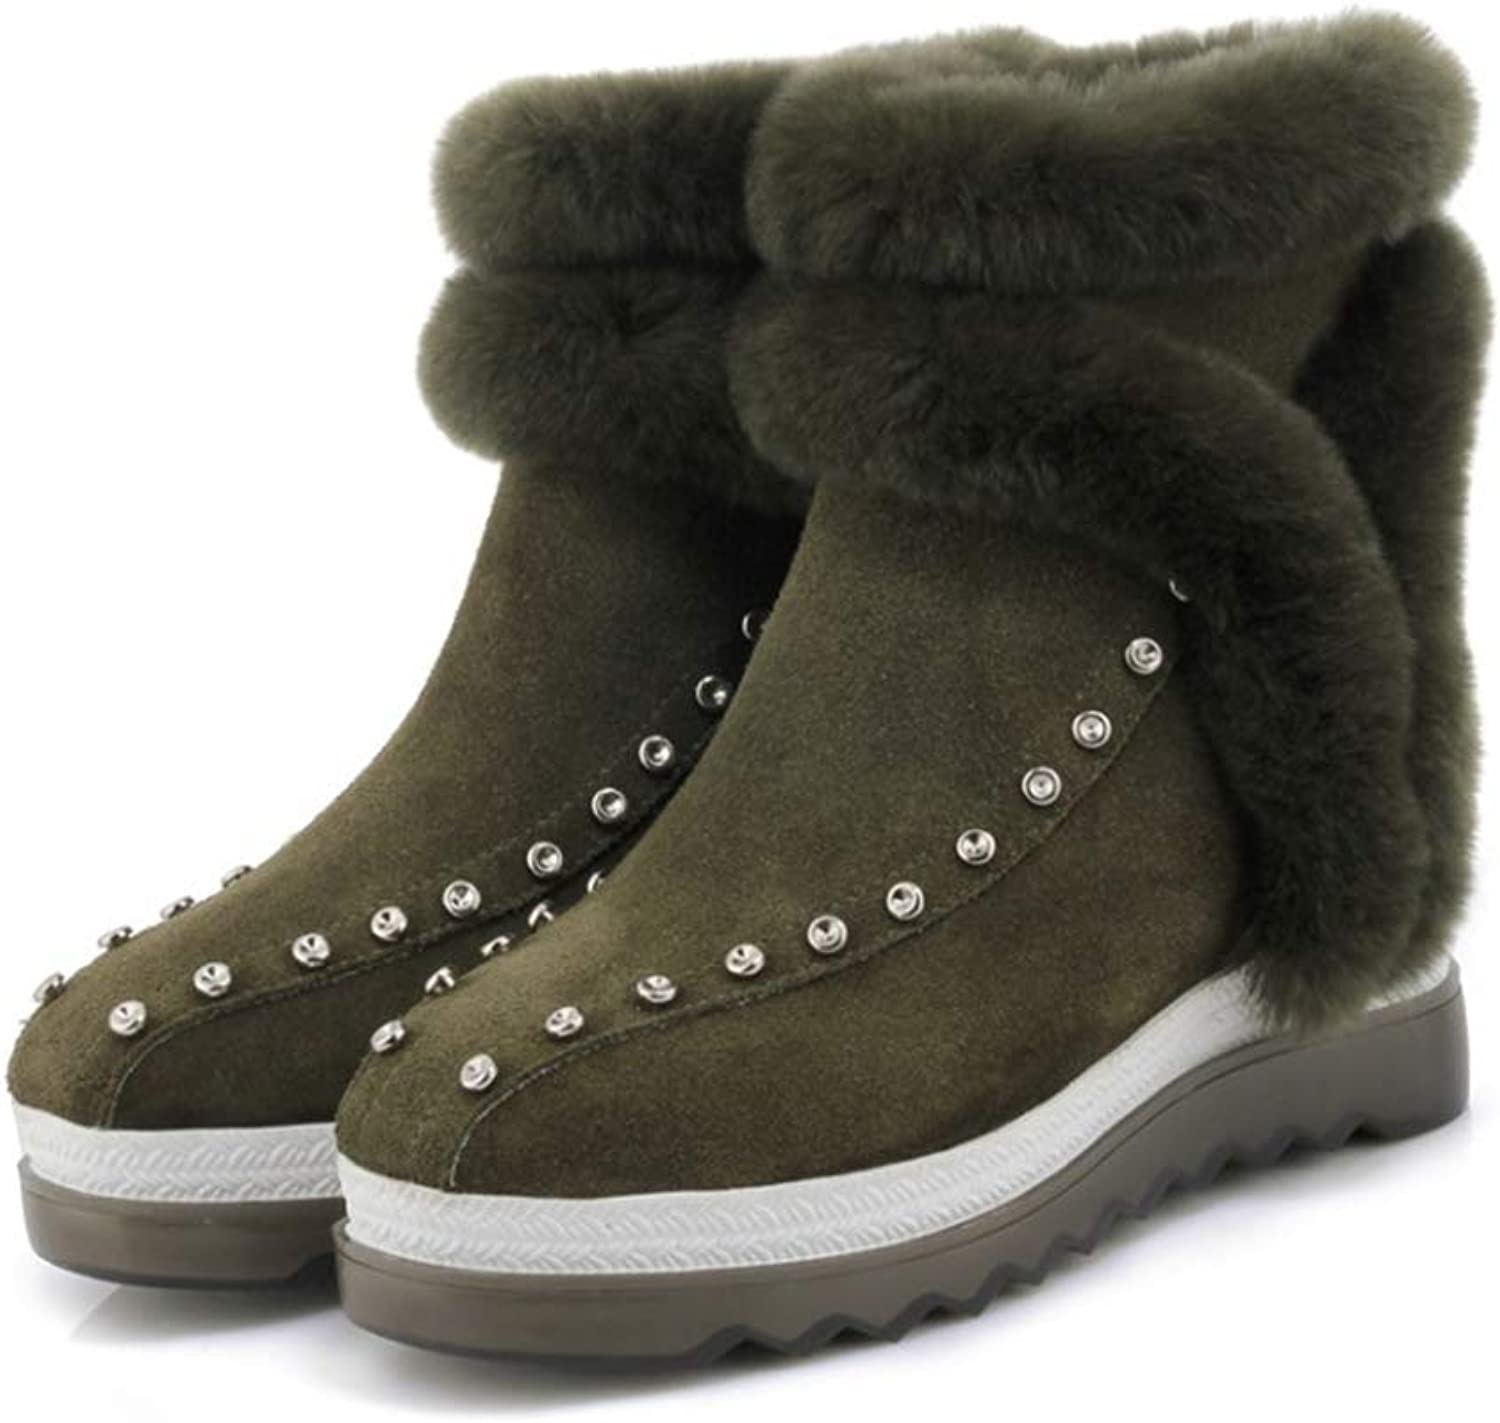 Women's Snow Boots, Winter Wedge Heel Fashion Boots Ladies Round Keep Warm Leather Personality Rivet Booties (color   A, Size   39)